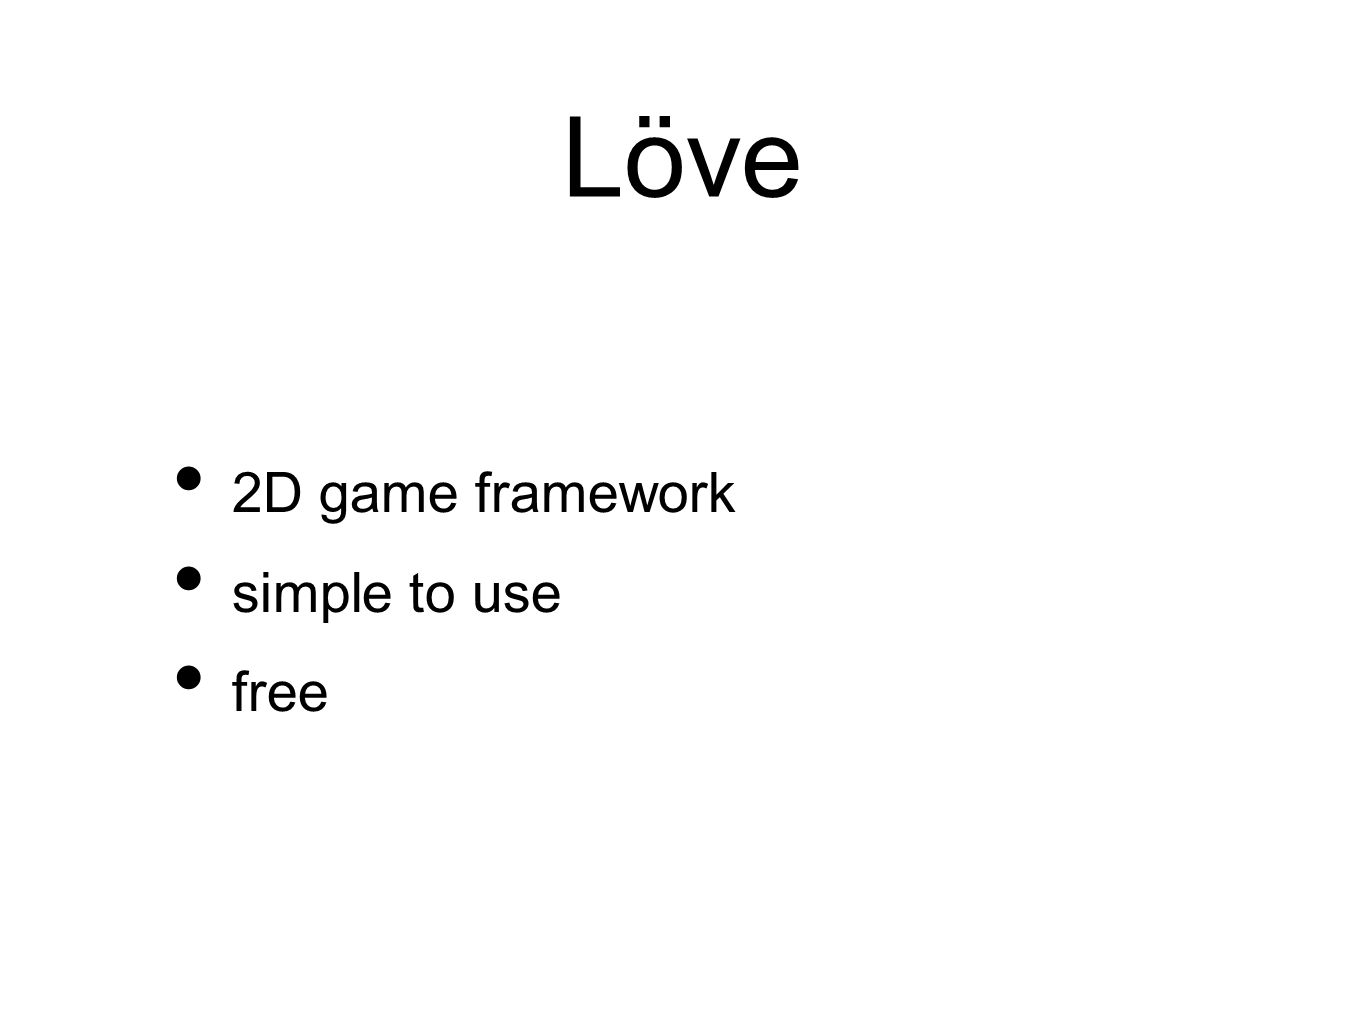 Löve and Lua based on guide-to-getting-started-with-love2d/ guide-to